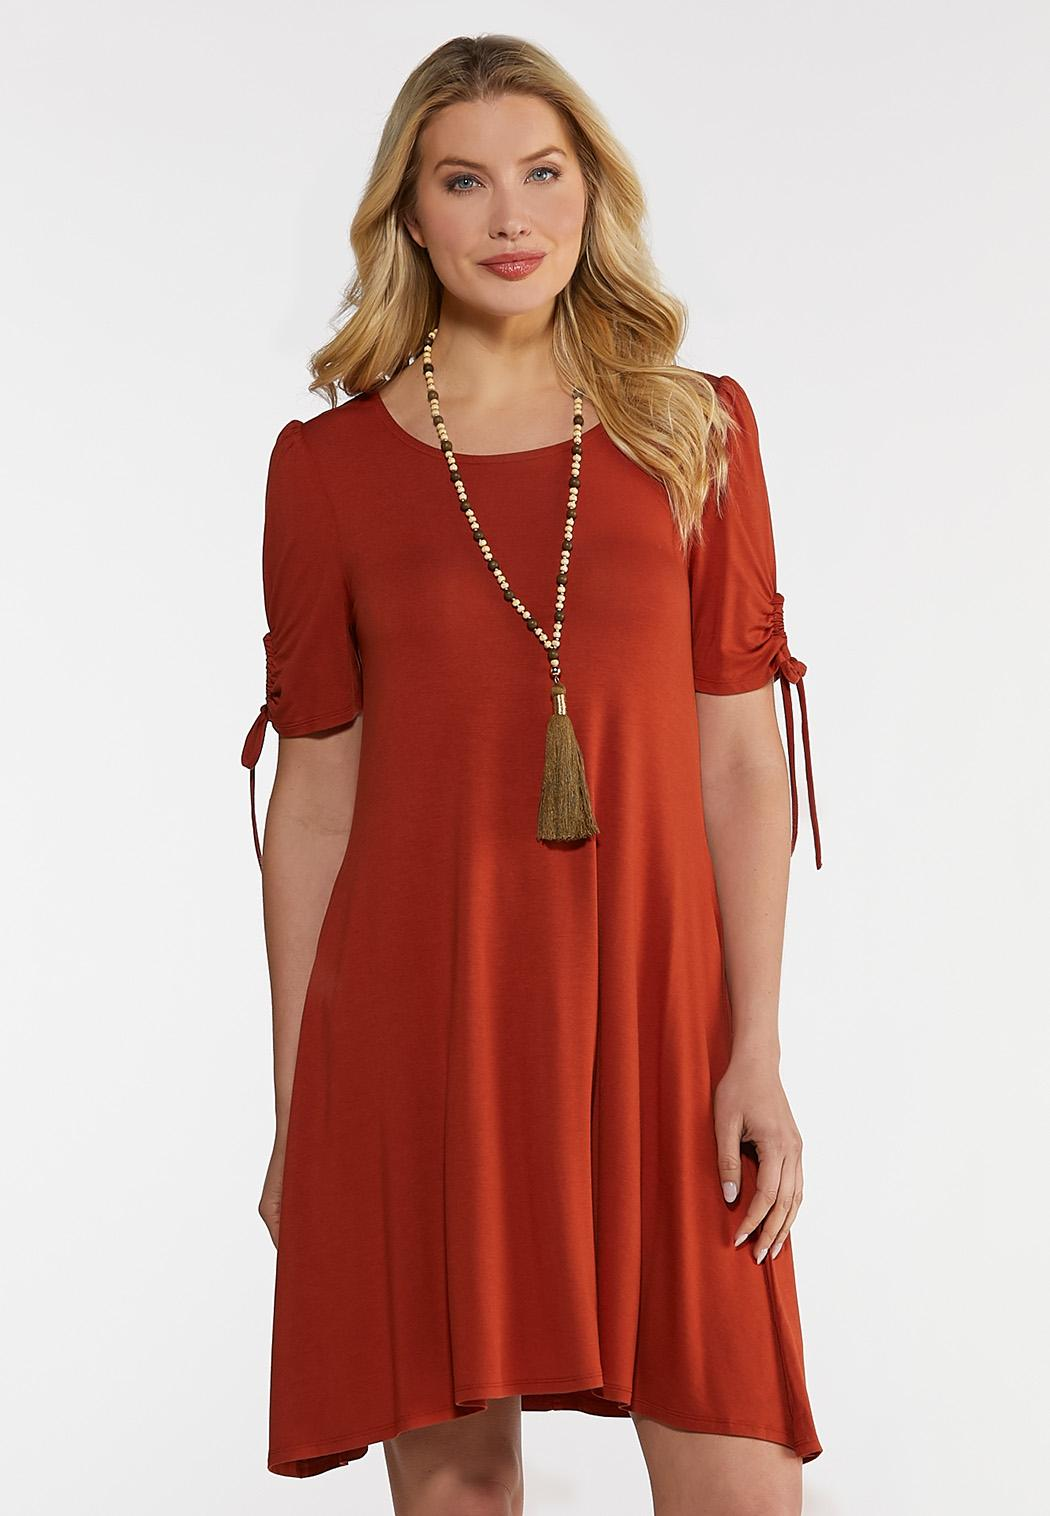 Drawstring Tie Sleeve Dress